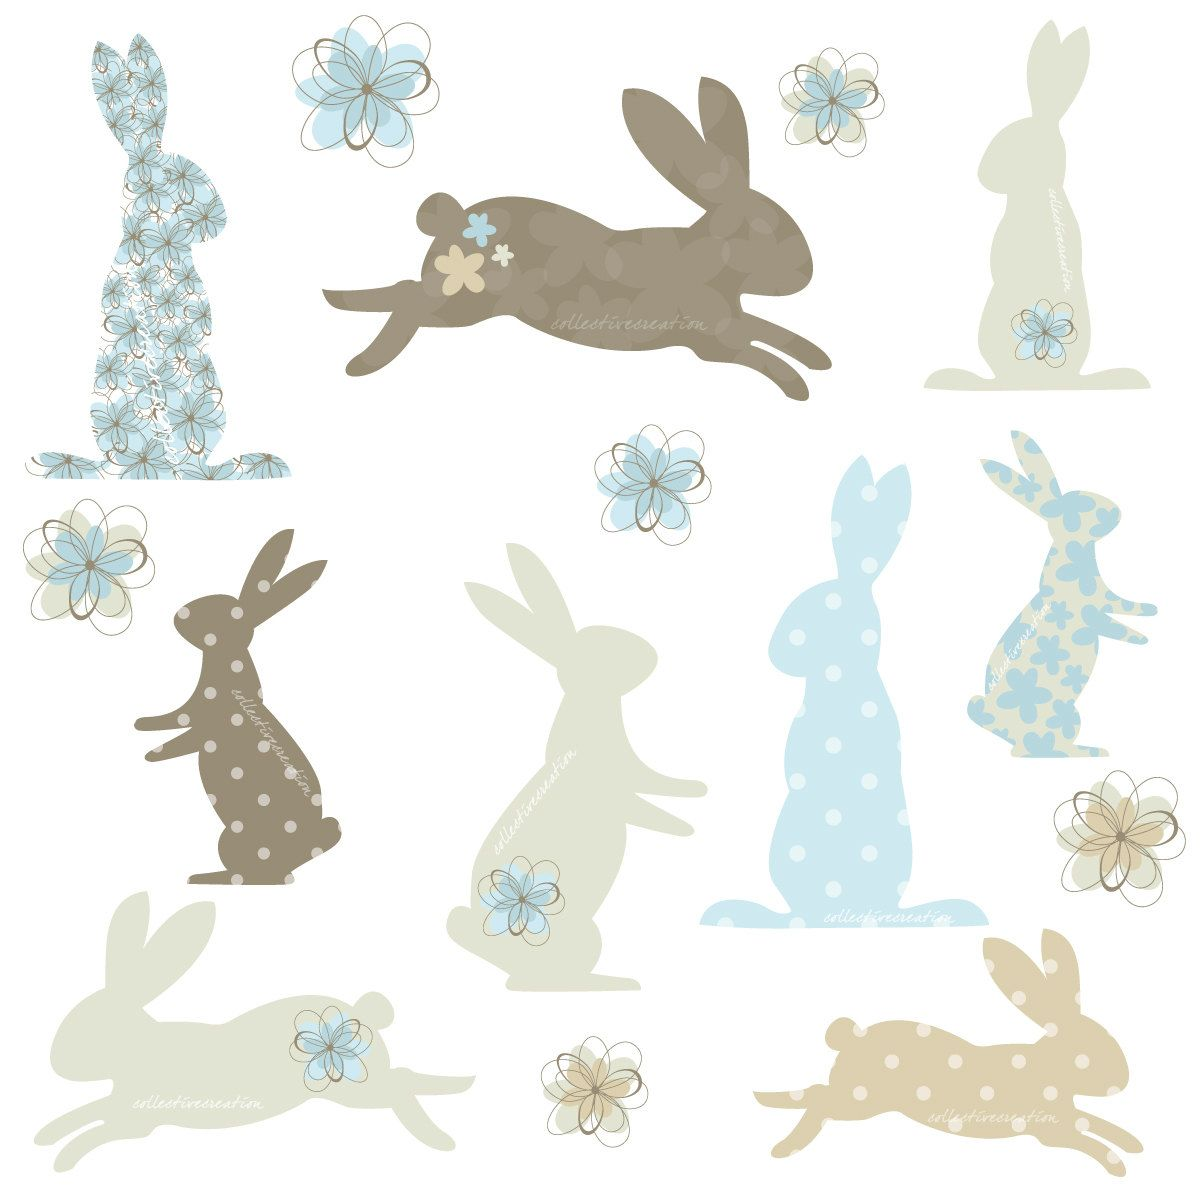 Bunny Rabbit Silhouettes With Patterns Clipart